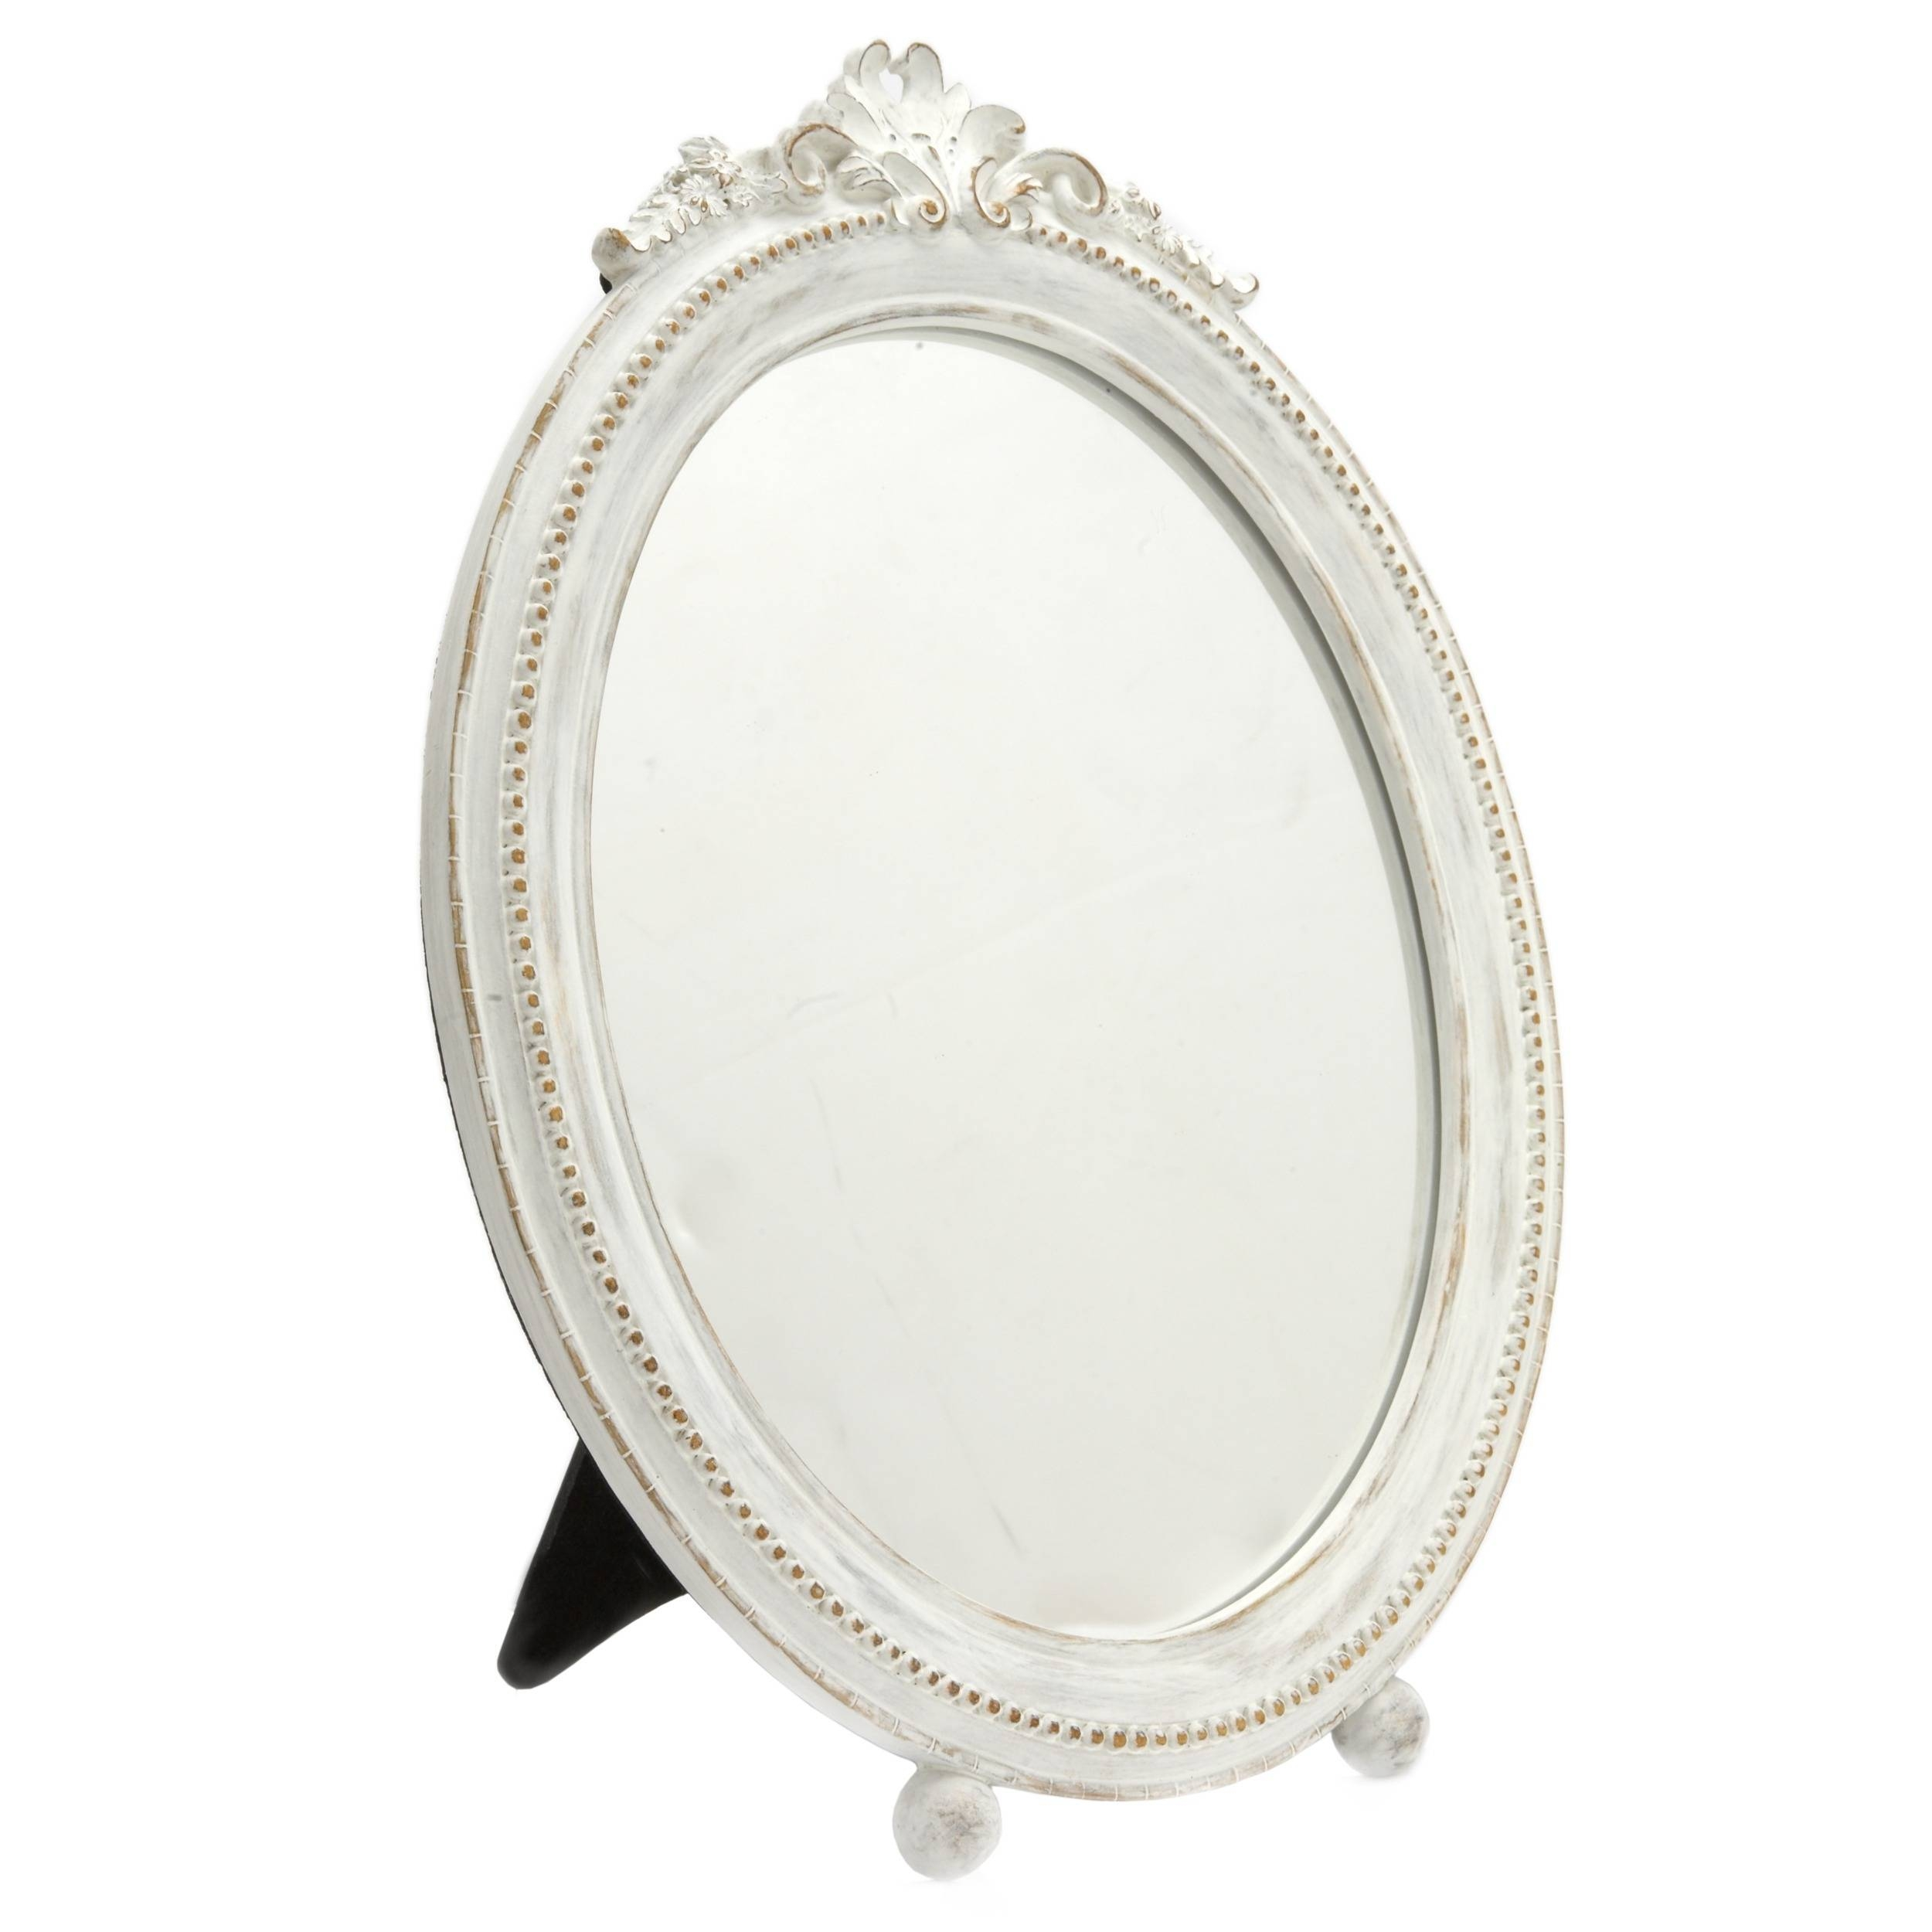 Dressing Table Mirror | Find It For Less Intended For Free Standing Dressing Table Mirrors (View 11 of 15)